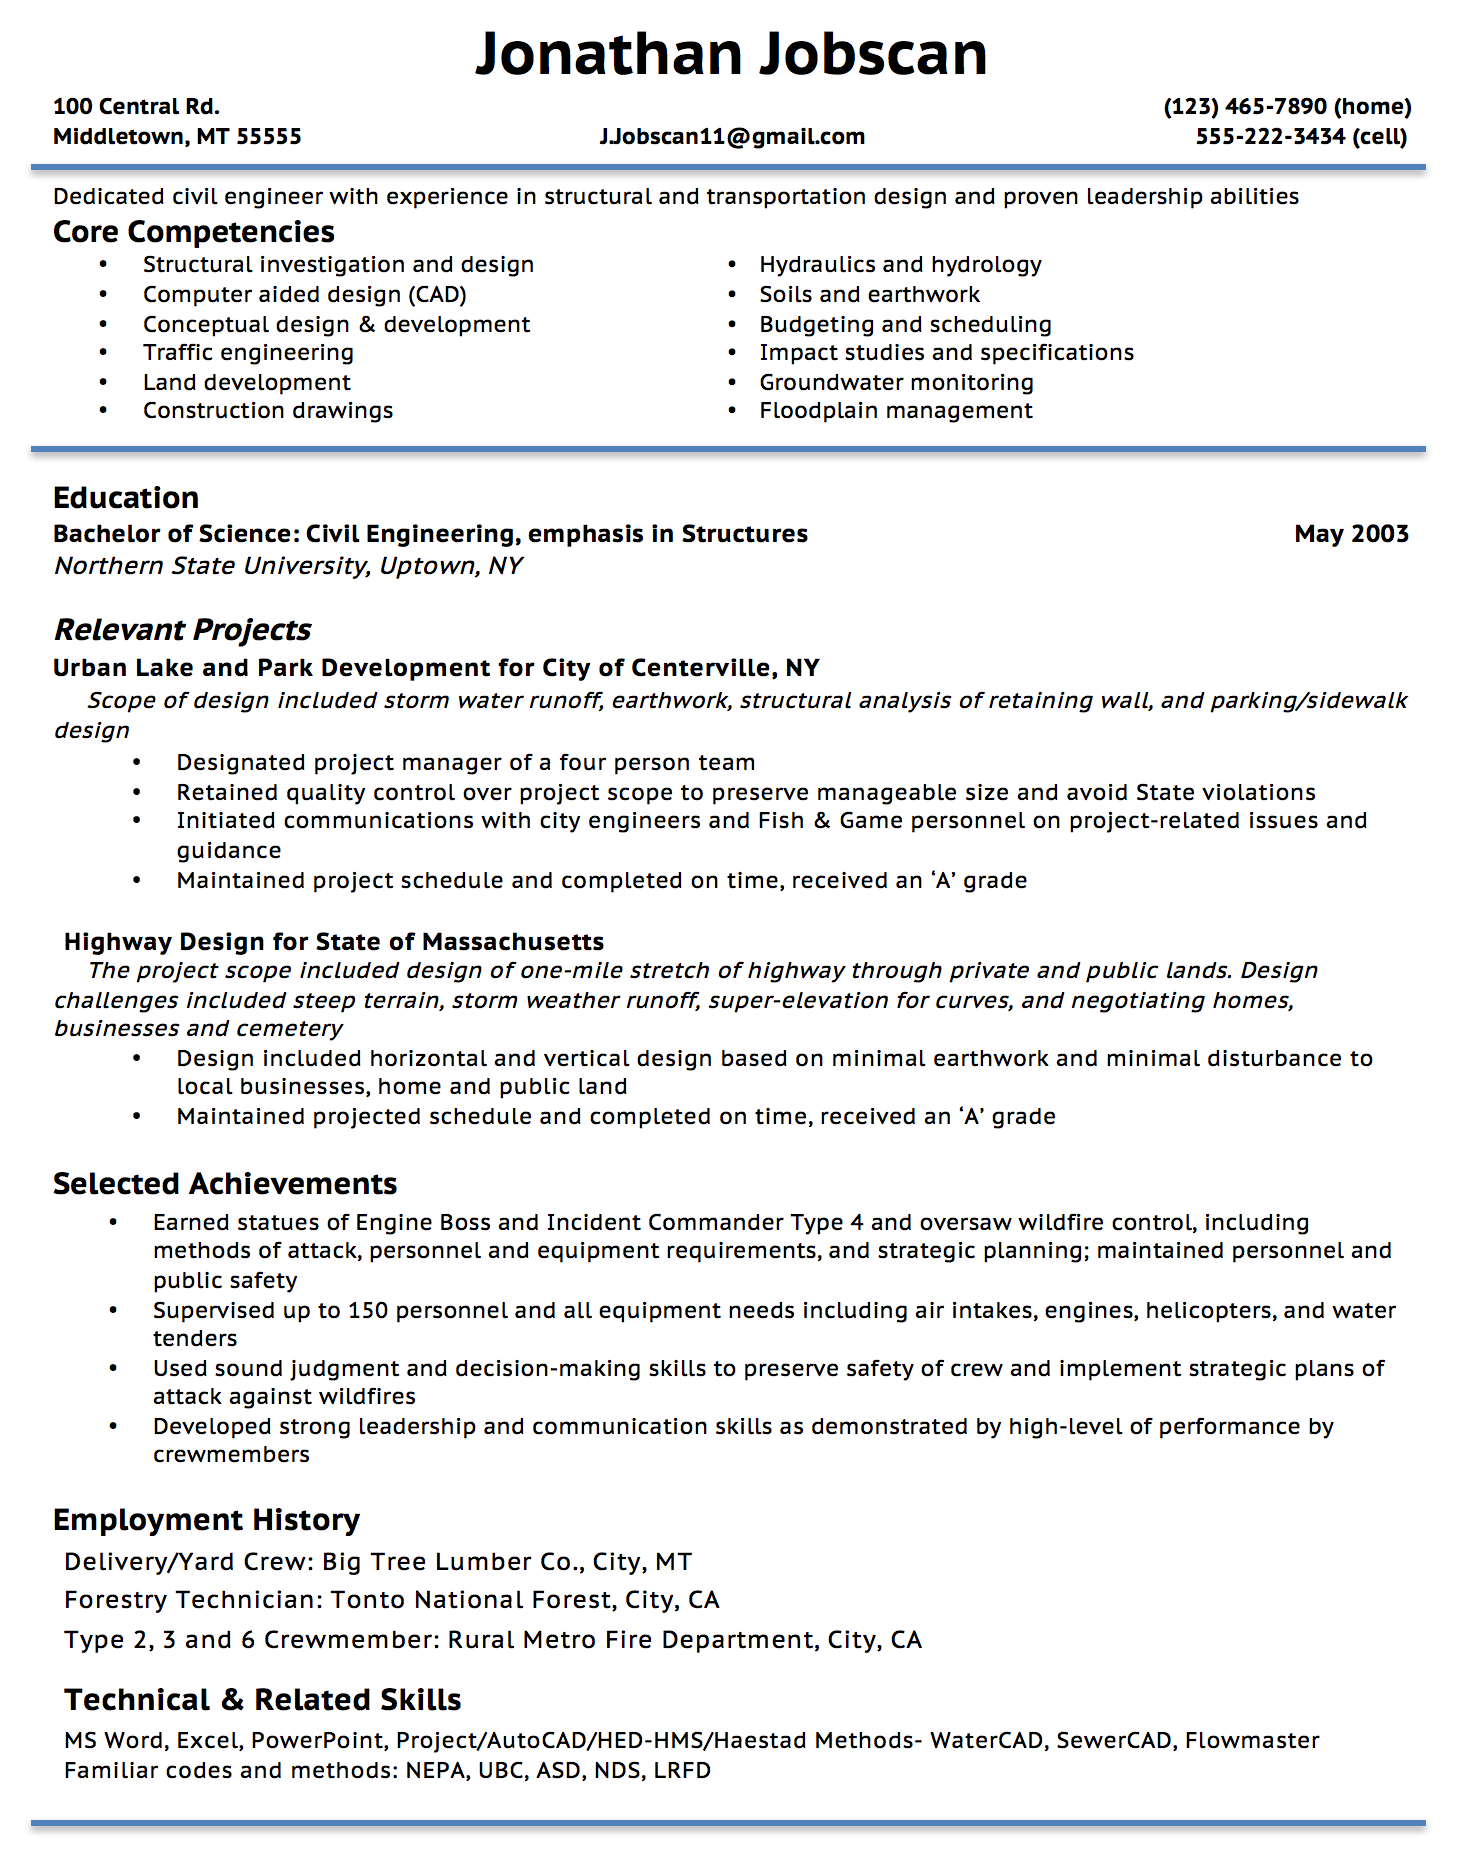 Opposenewapstandardsus  Marvellous Resume Writing Guide  Jobscan With Lovable Example Of A Functional Resume Format With Astonishing Actor Resume Example Also Marketing Project Manager Resume In Addition Telemarketer Resume And Nursing Student Resume Sample As Well As Resume Design Tips Additionally Software Engineer Sample Resume From Jobscanco With Opposenewapstandardsus  Lovable Resume Writing Guide  Jobscan With Astonishing Example Of A Functional Resume Format And Marvellous Actor Resume Example Also Marketing Project Manager Resume In Addition Telemarketer Resume From Jobscanco